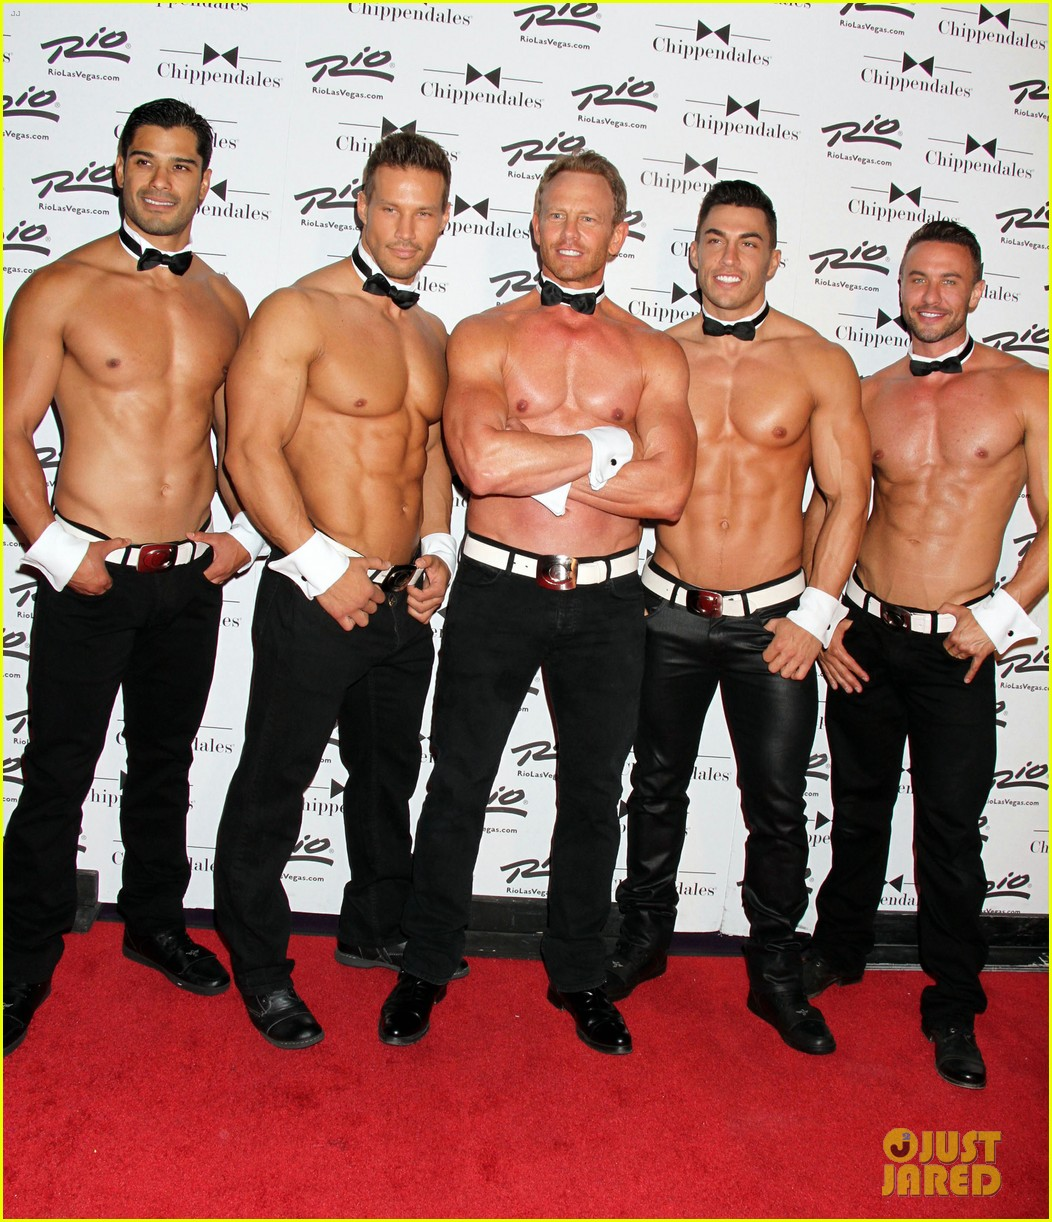 51451558 Former '90210' star Ian Ziering returns to the Chippendales for a six week summer engagment as a celebrity guest host at the Chippendales Theater at the Rio All-Suite Hotel & Casino in Las Vegas, Nevada on June 14, 2014. FameFlynet, Inc - Beverly Hills, CA, USA - +1 (818) 307-4813